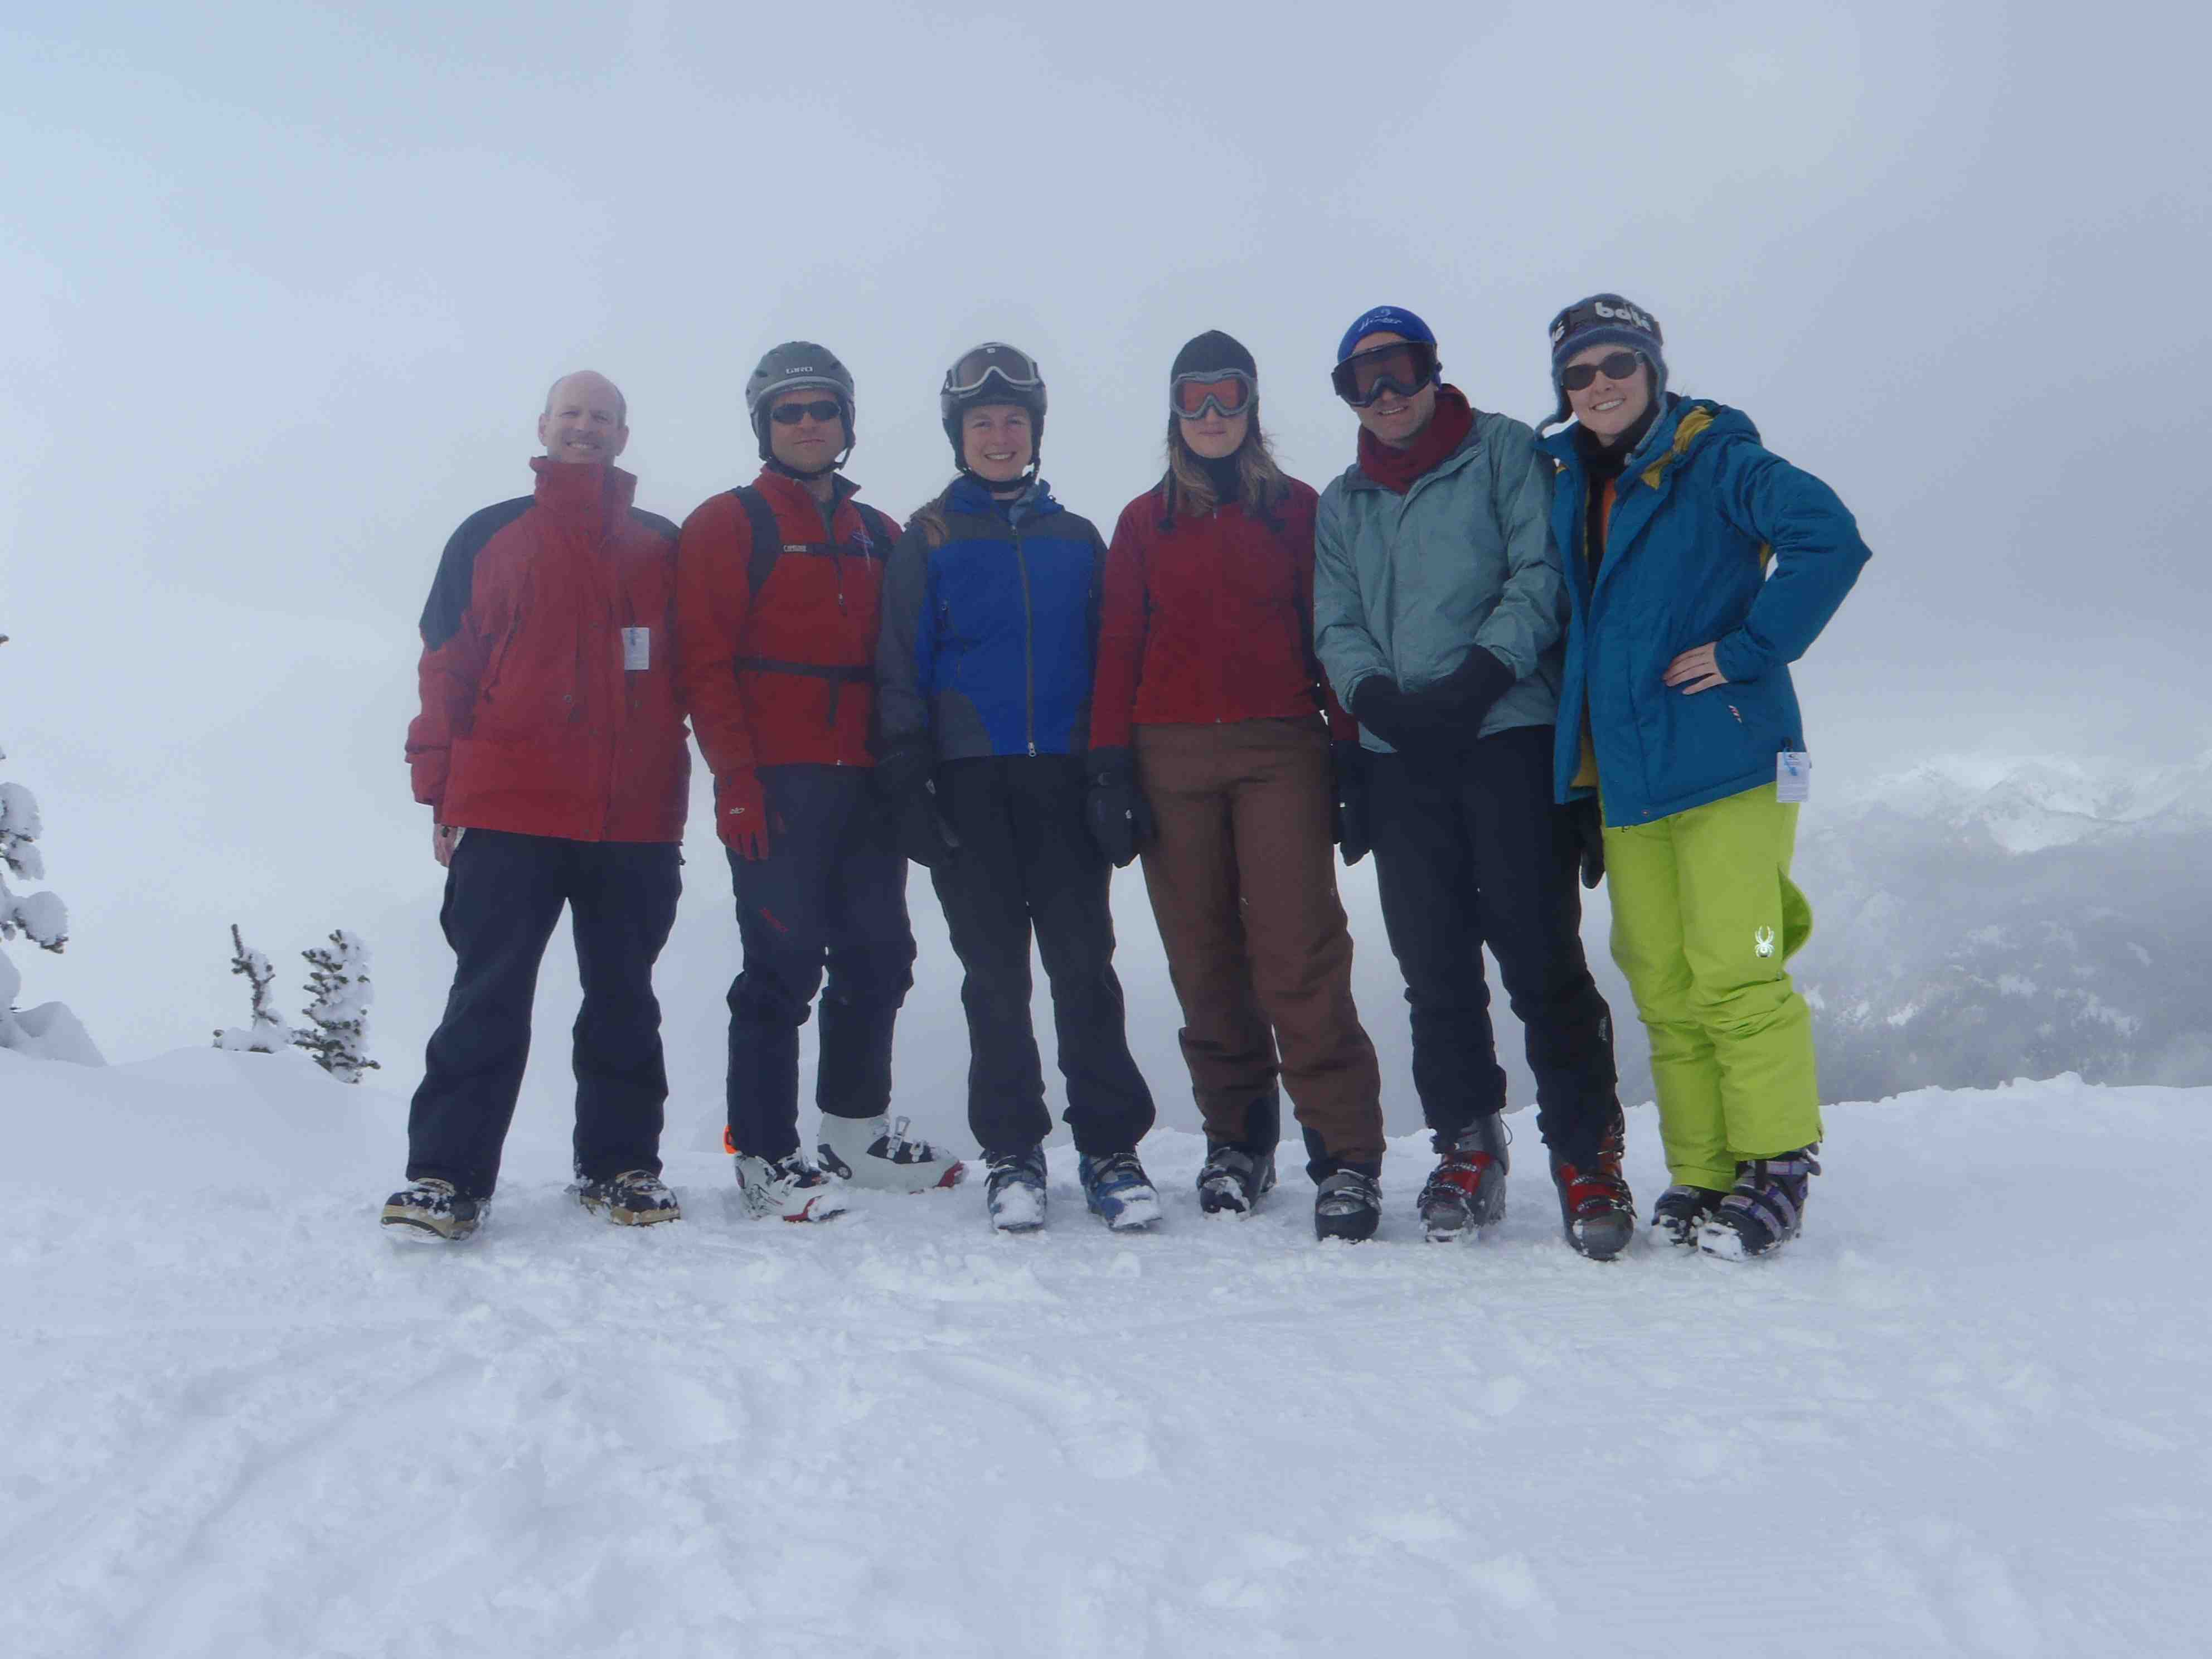 http://faculty.washington.edu/jsachs/lab/www/Research/people/Sachs_Lab_Ski_Trip_29Mar2011_sm.jpg